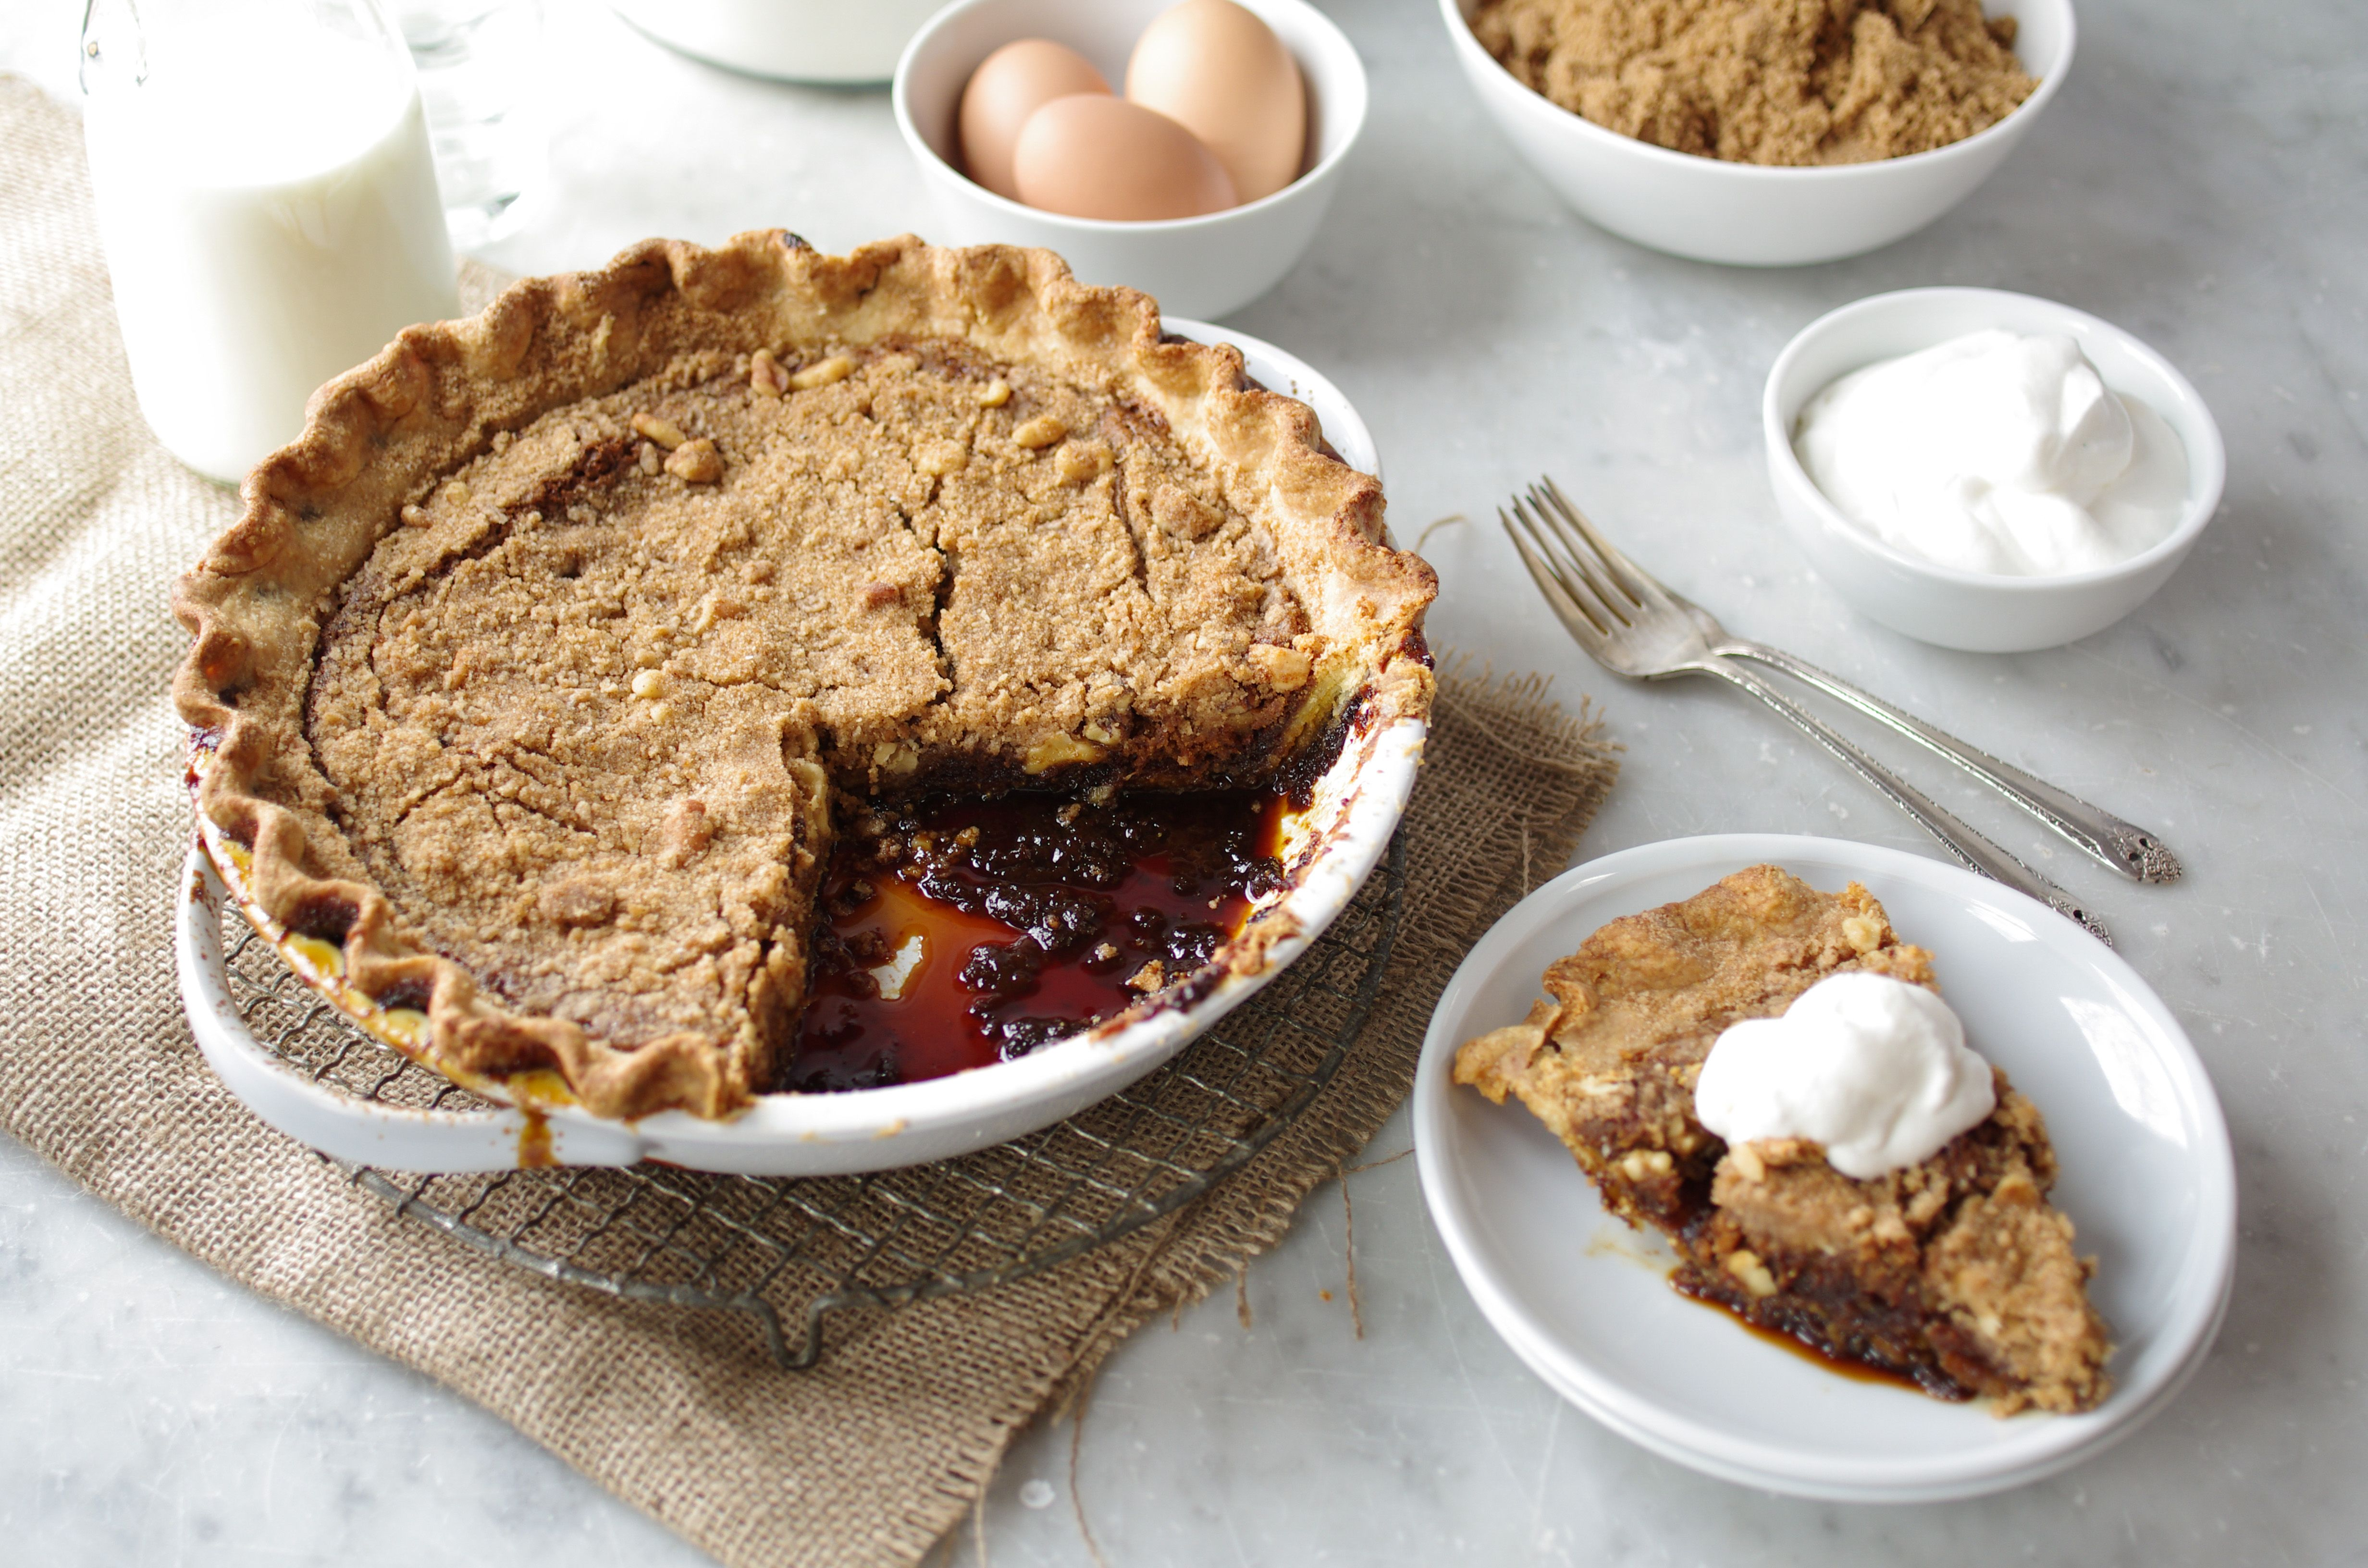 Shoofly pie with walnuts